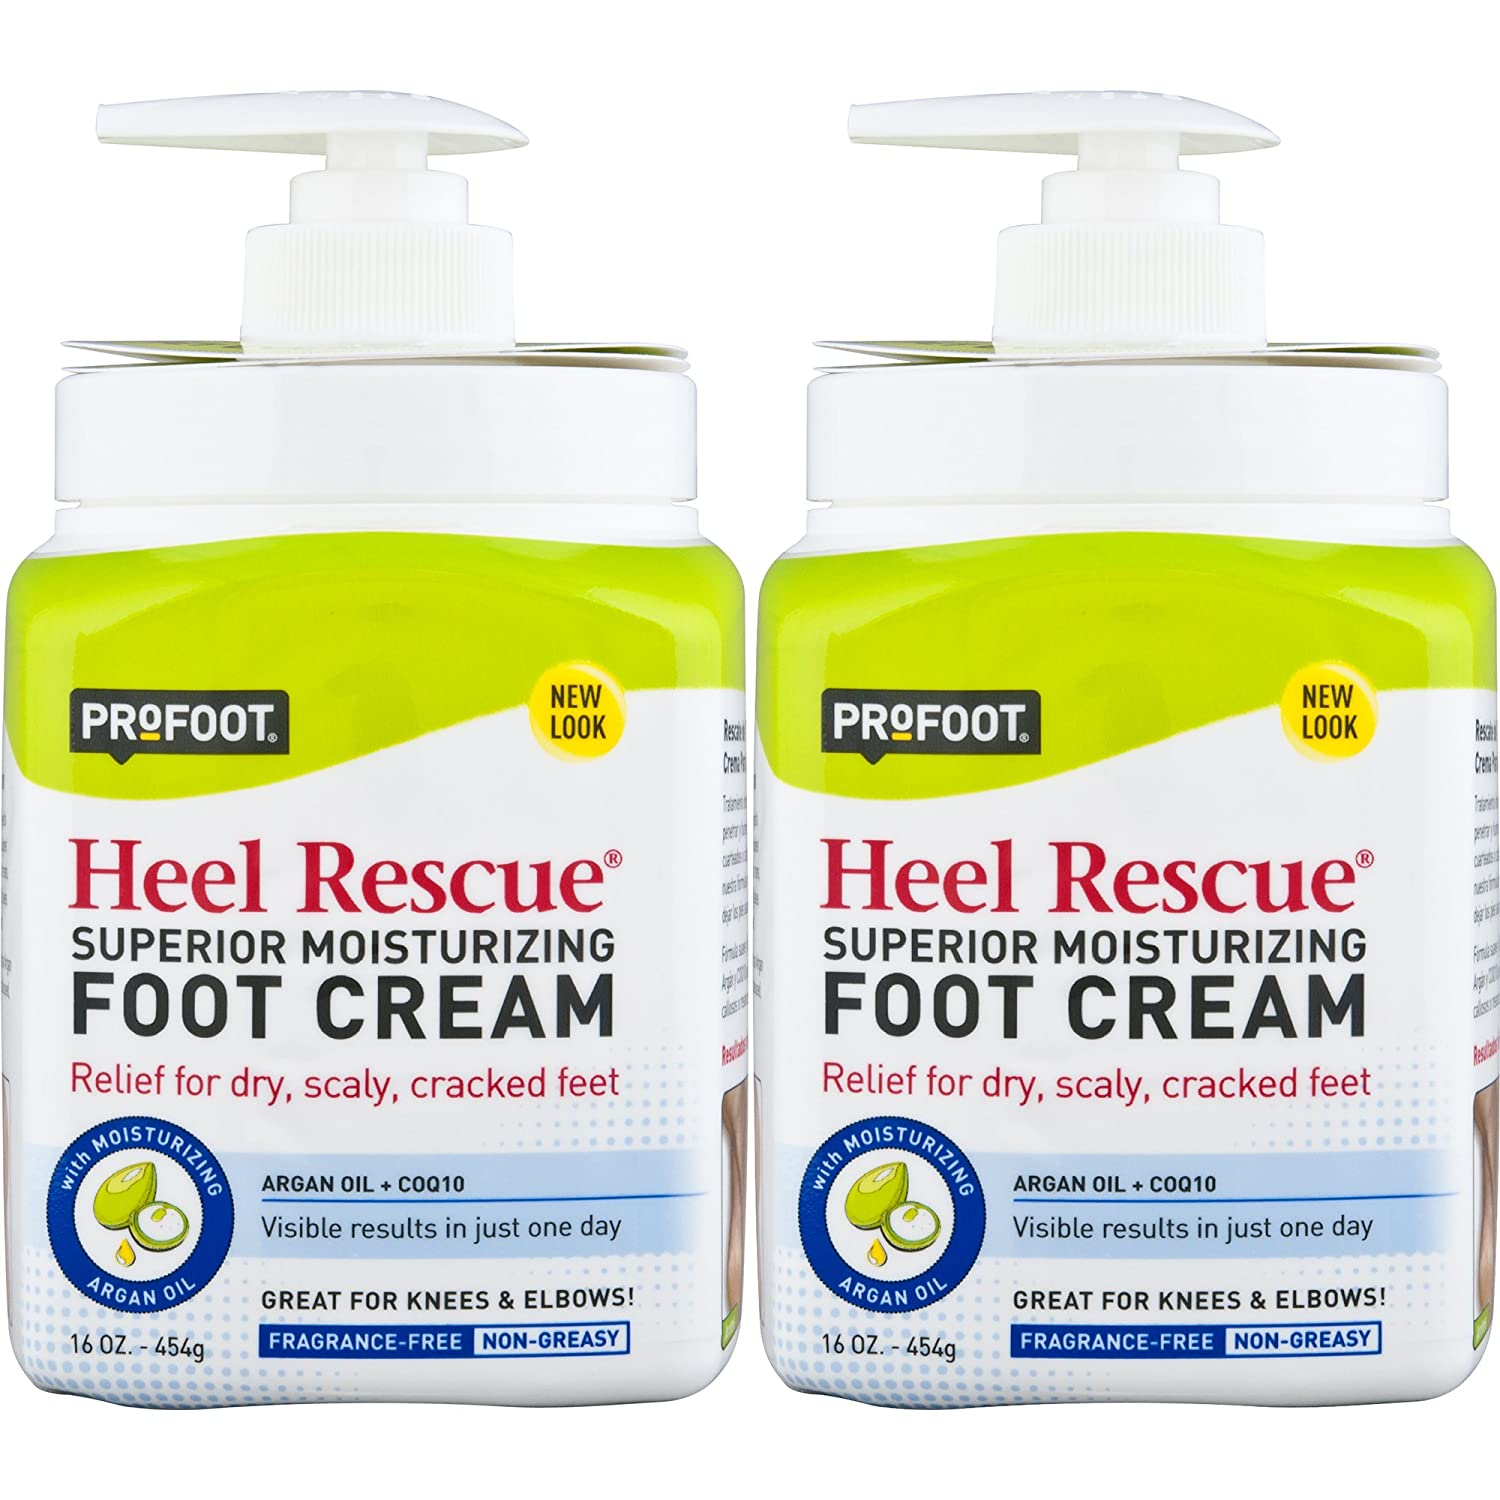 PROFOOT Heel Rescue Foot Cream, 16 Ounce (Pack of 3) Non-Greasy Foot Cream Ideal for Cracked Skin Calloused Skin or Chapped Skin on Feet Heels Elbows and Knees, Penetrates Moisturizes and Repairs Profoot Care 1253